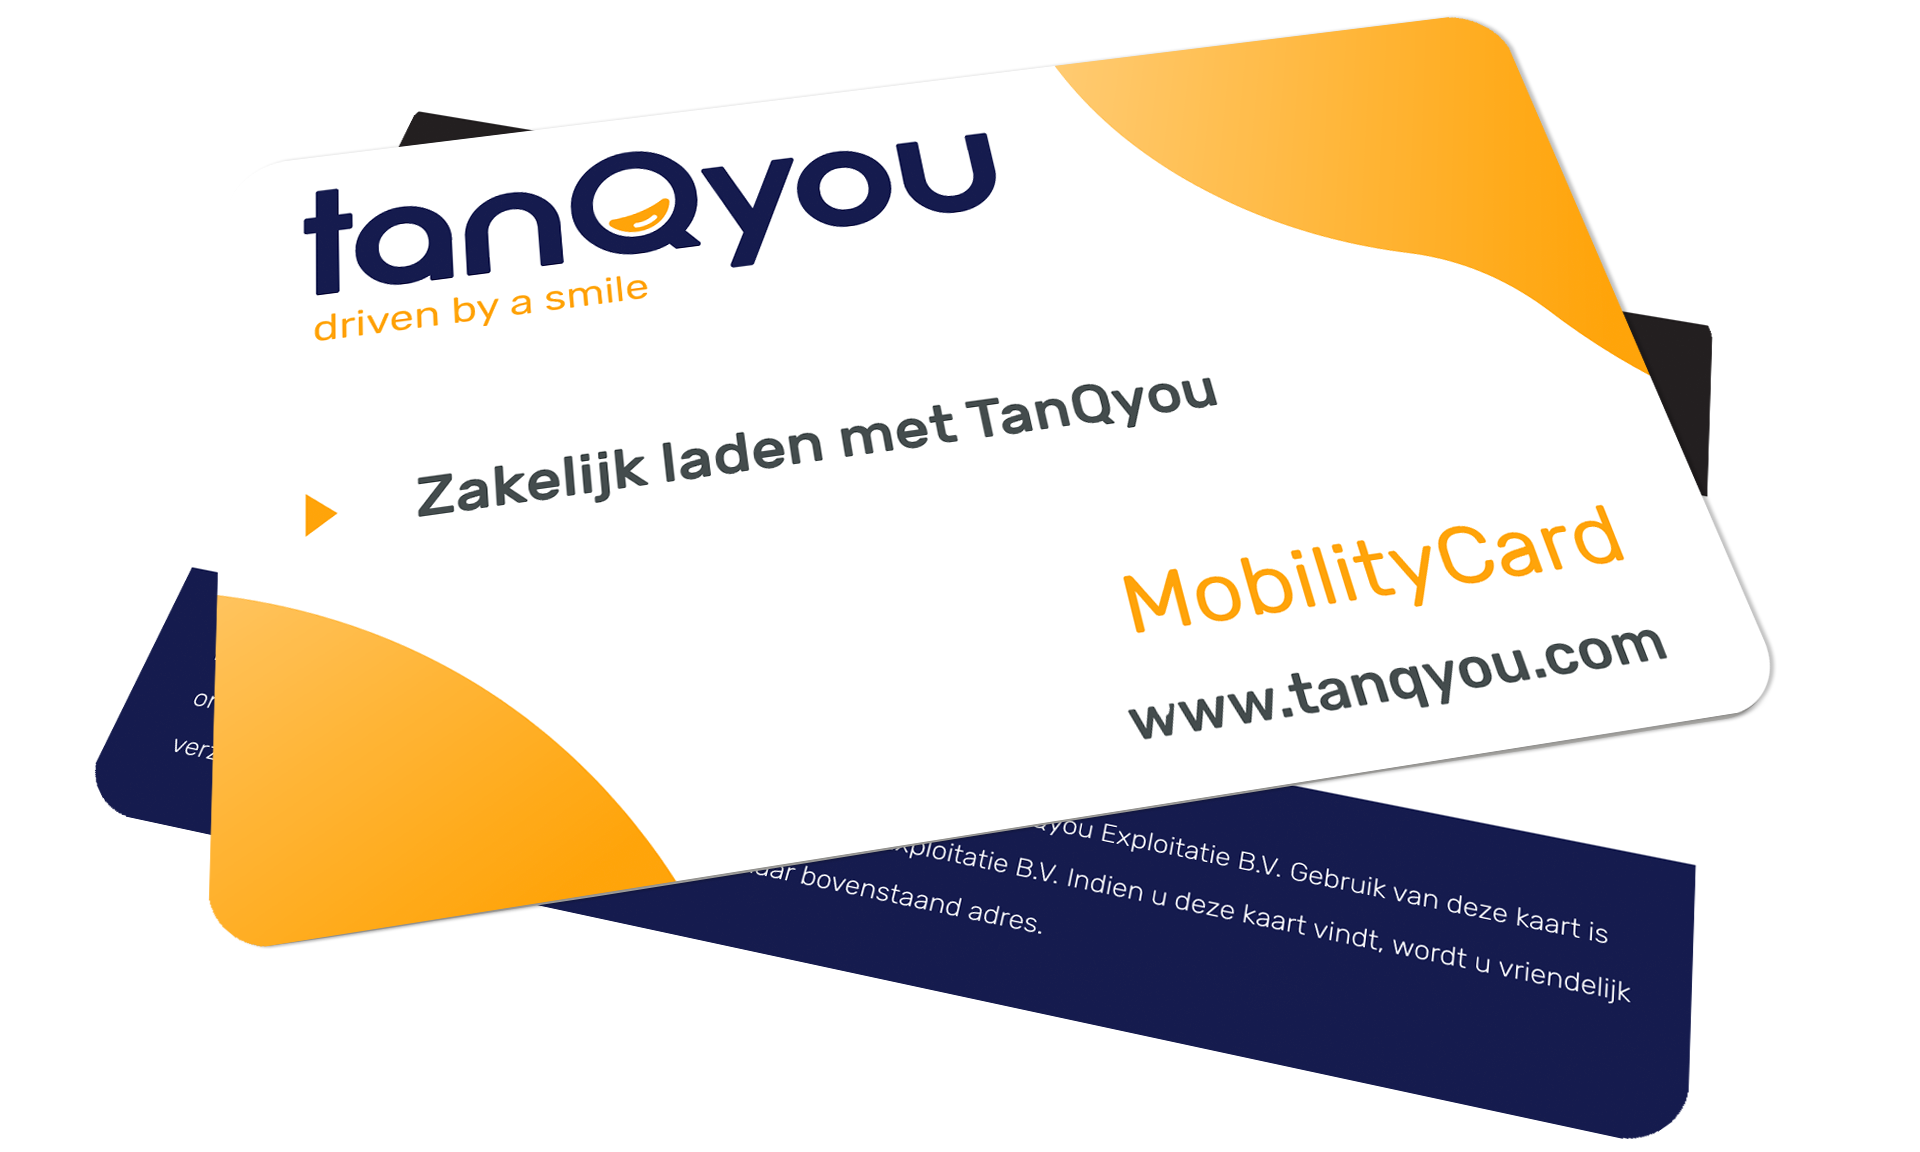 MobilityCard